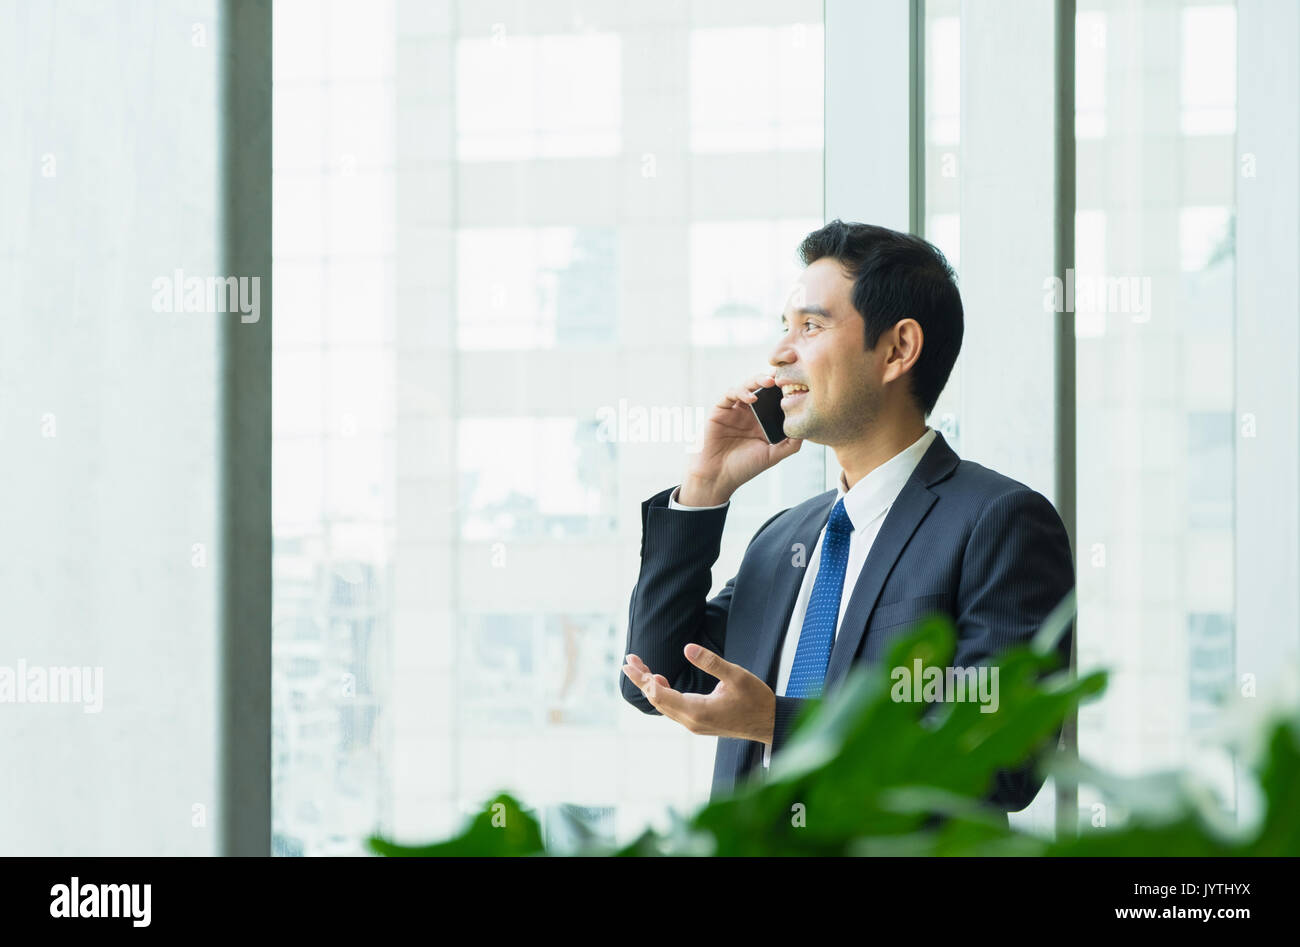 Businessman using mobile phone near office window at receptions area,Negotiation concept. - Stock Image